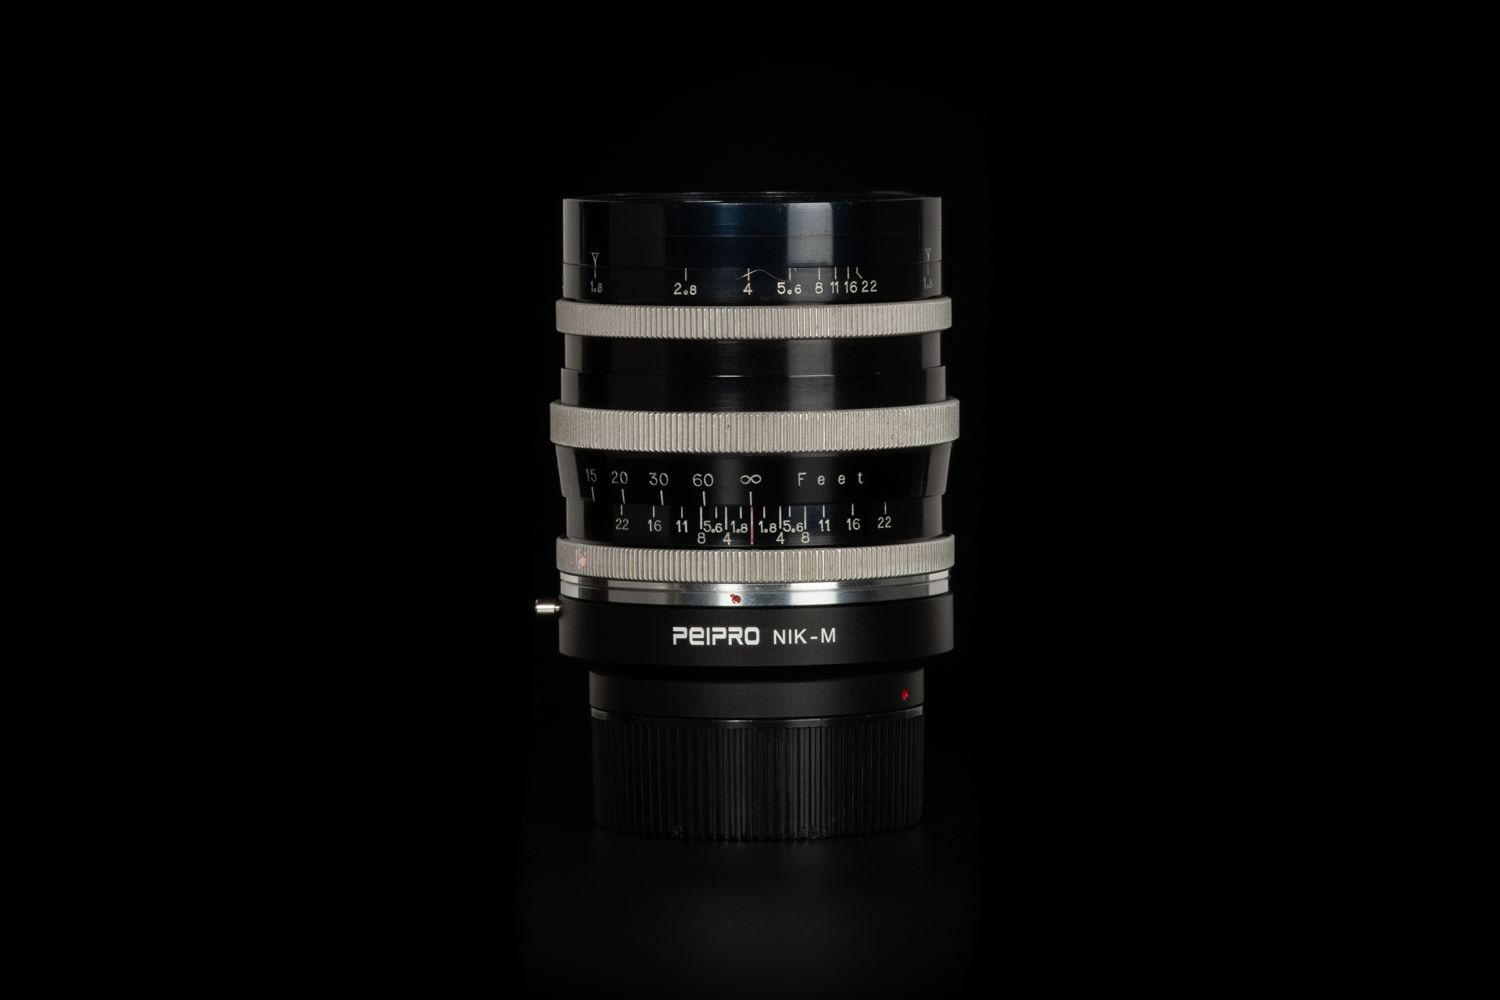 Picture of Angenieux Type P1 90mm f/1.8 Modified To Nikon F